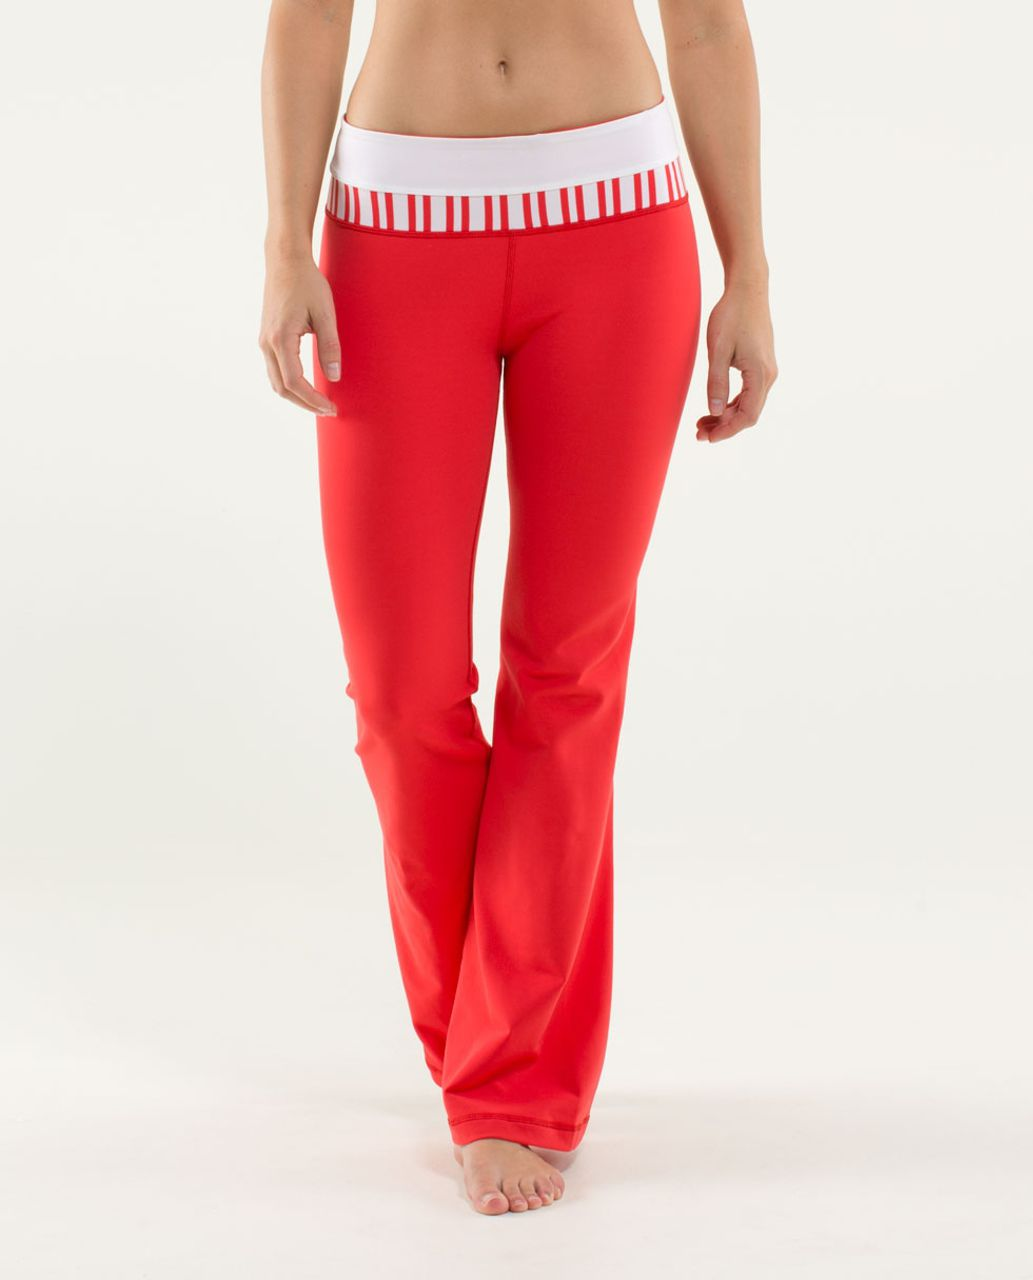 Lululemon Groove Pant (Regular) - Love Red / White / Twin Stripe Love Red